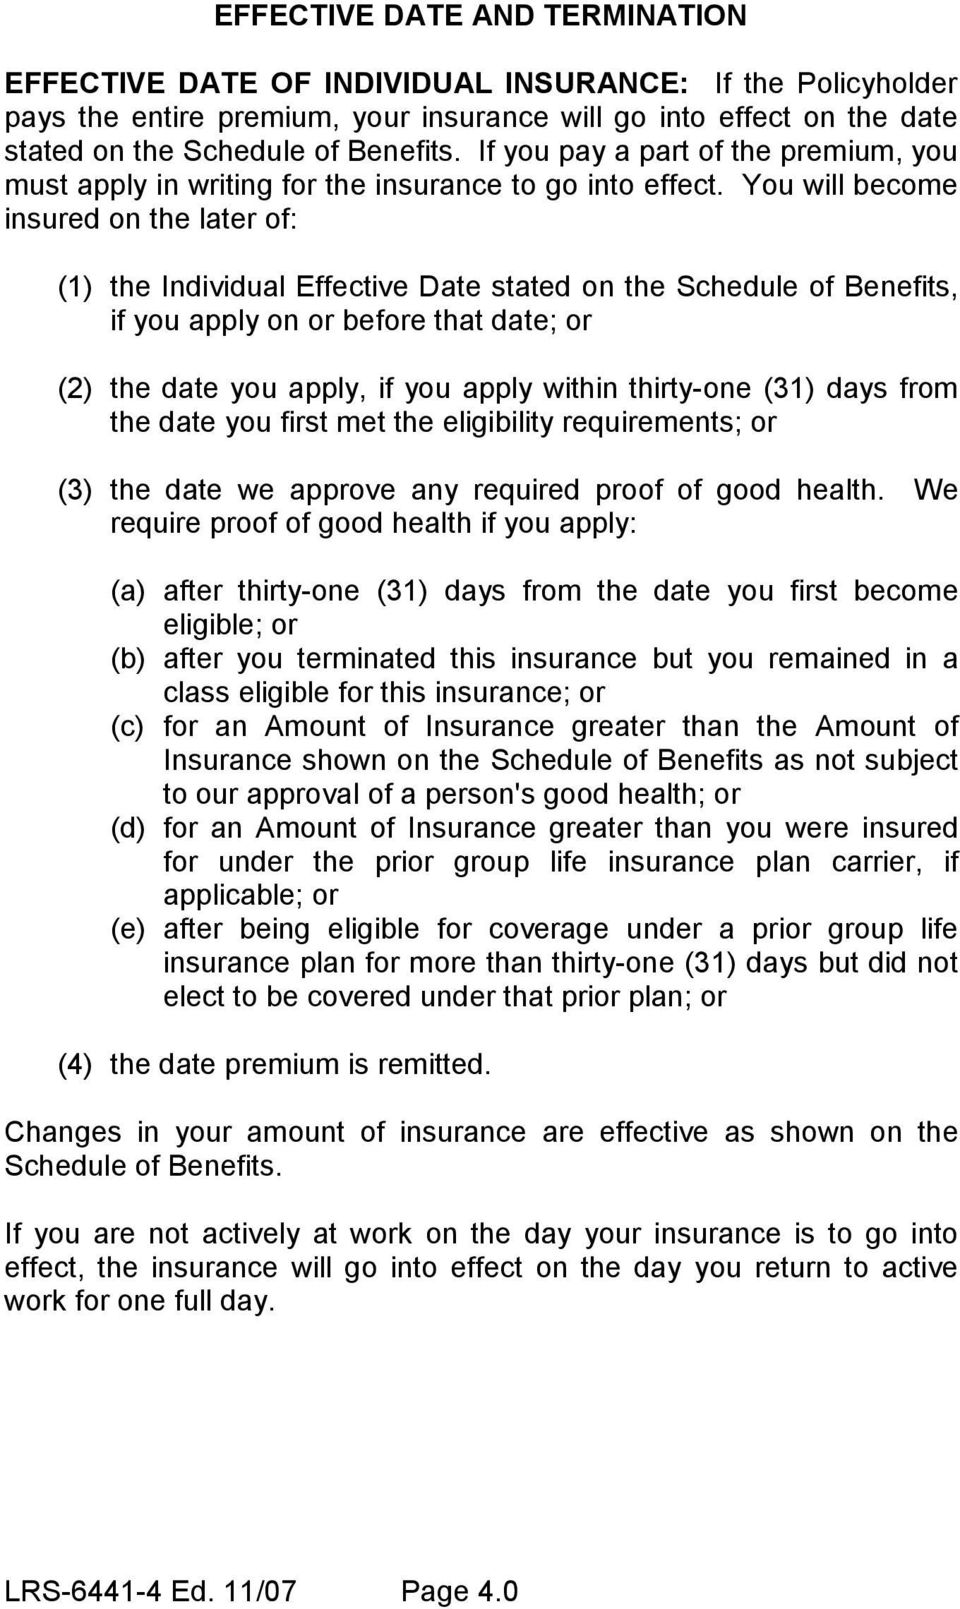 You will become insured on the later of: (1) the Individual Effective Date stated on the Schedule of Benefits, if you apply on or before that date; or (2) the date you apply, if you apply within